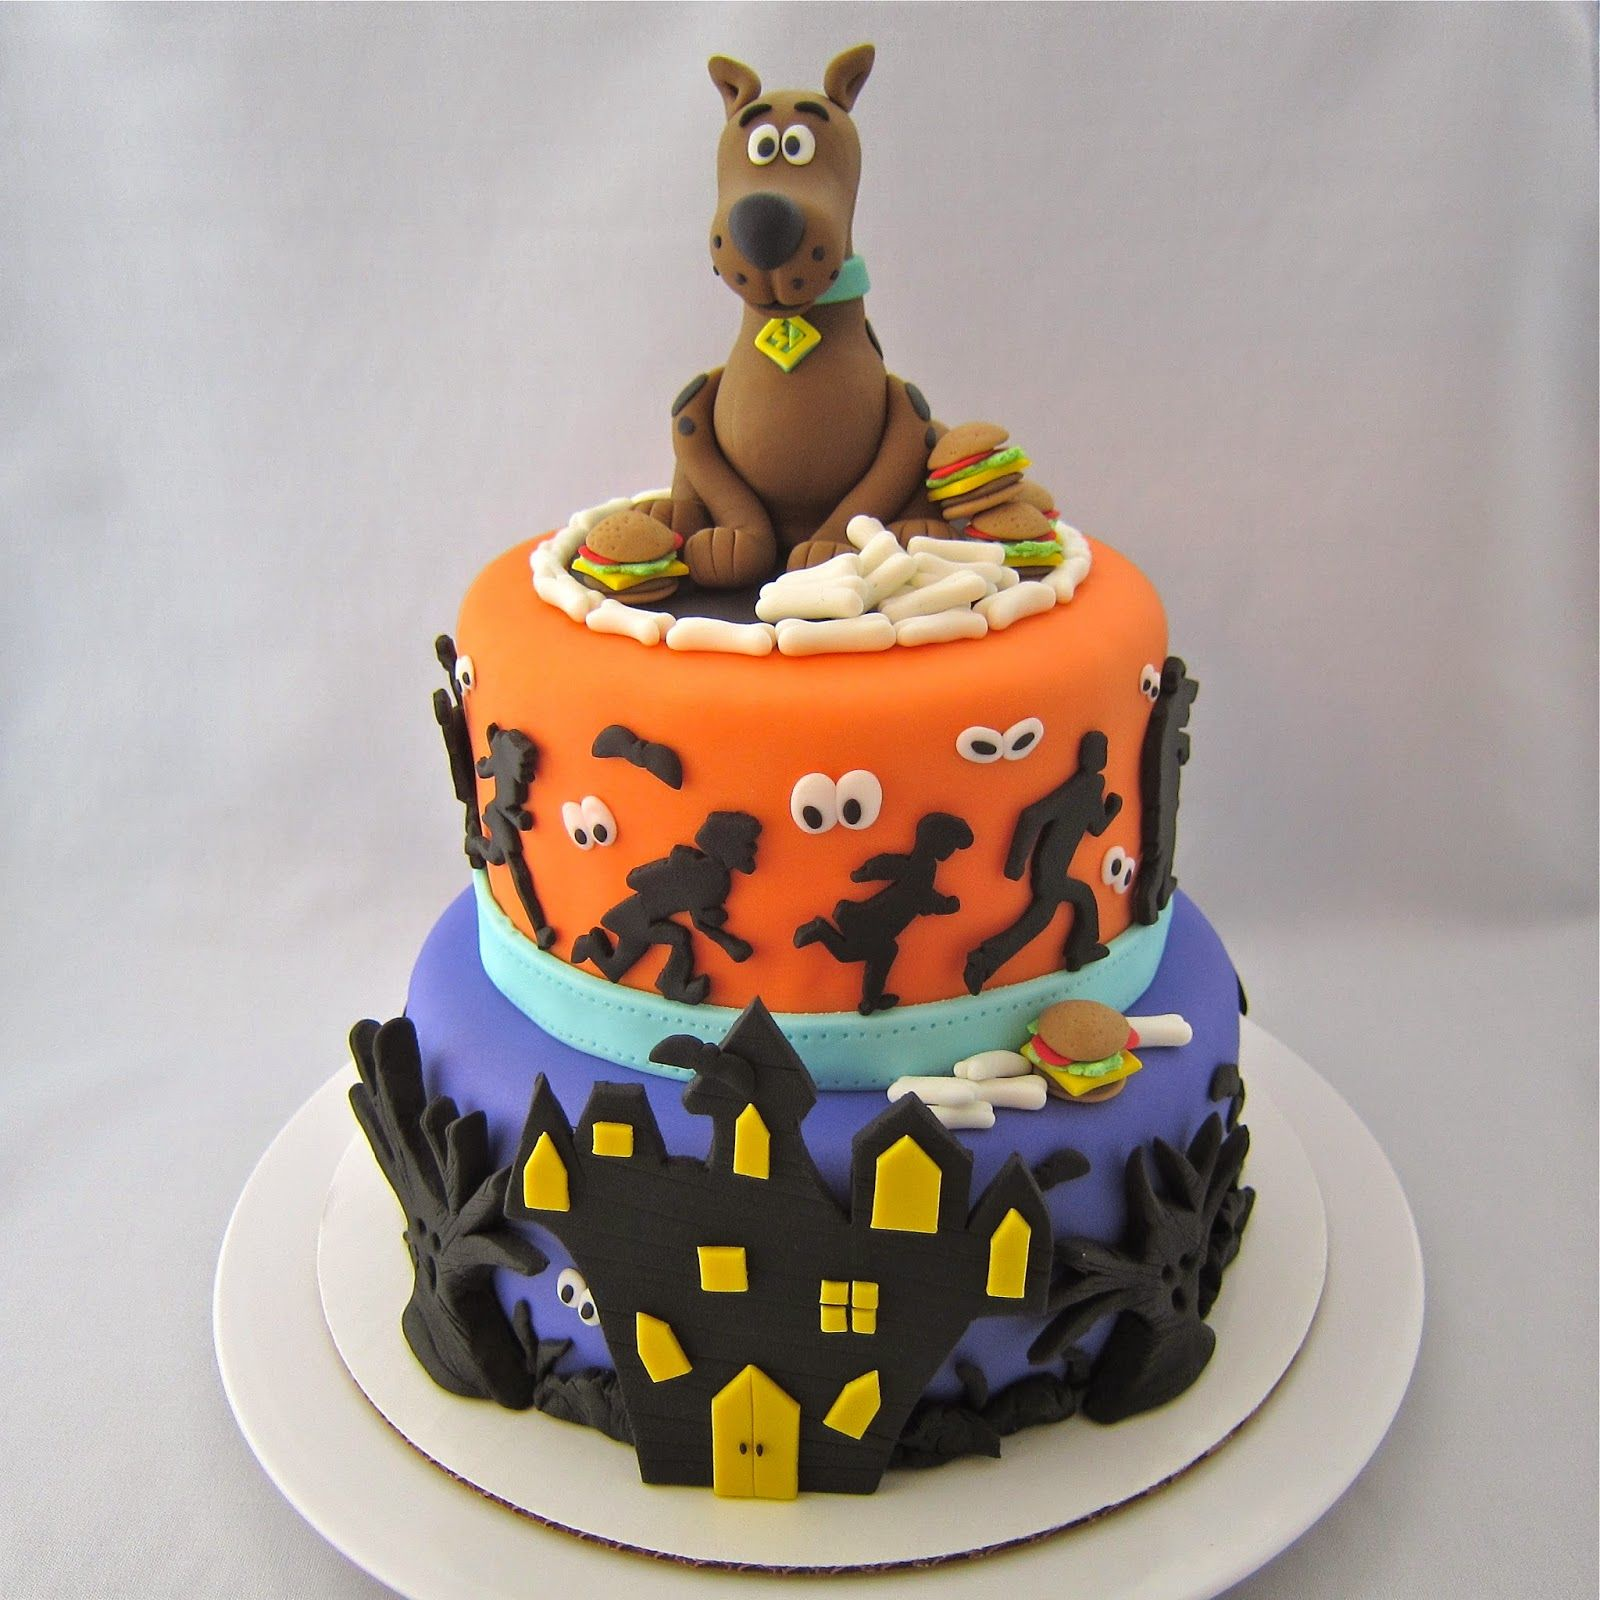 Scooby Doo Cake Cake Of Cakes With Images Scooby Doo